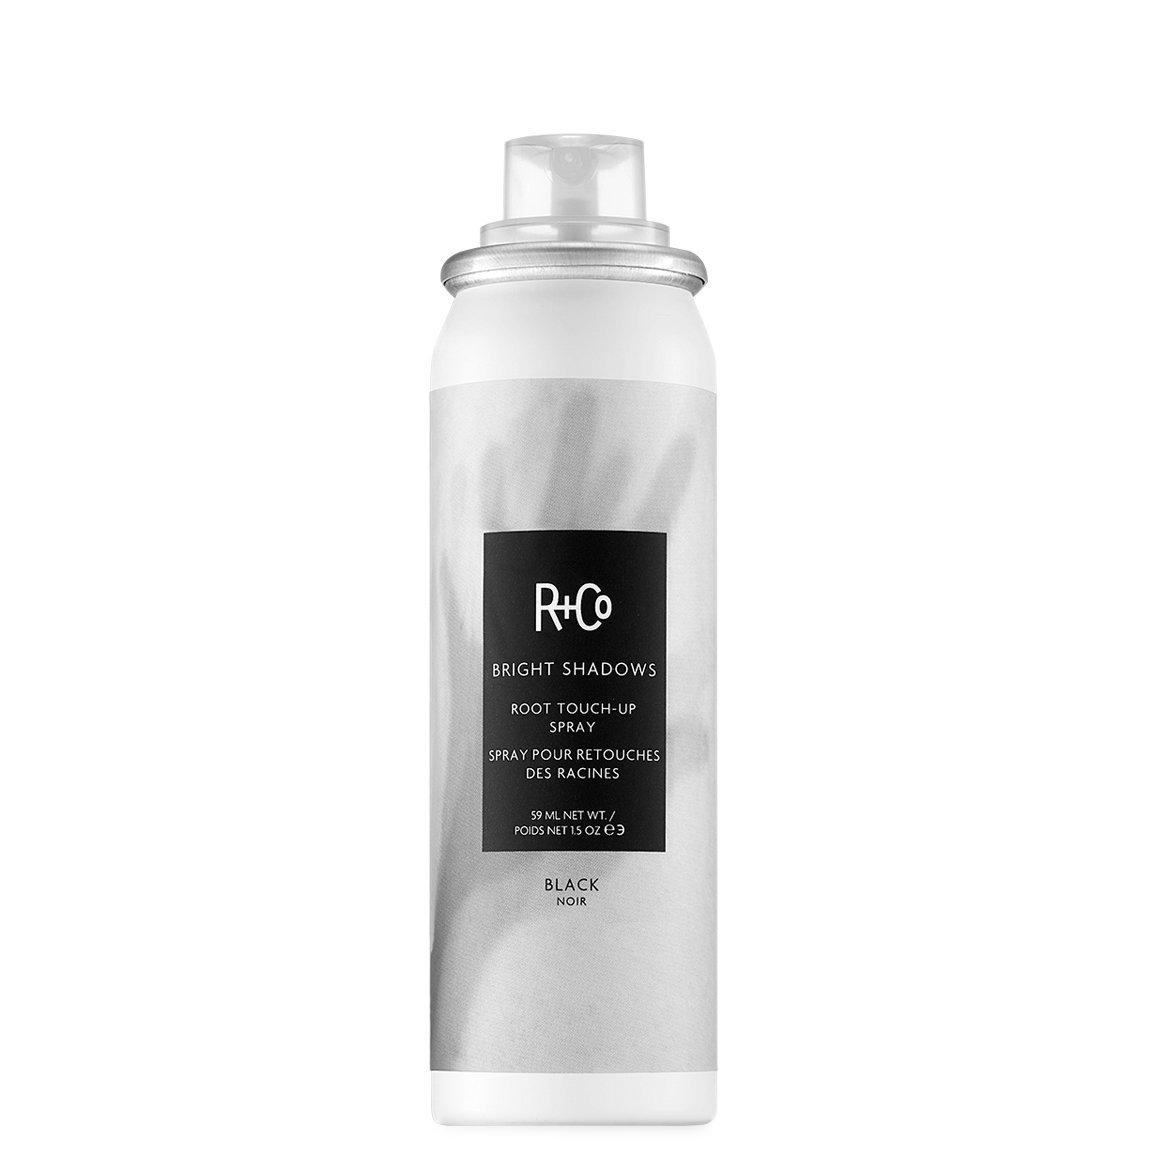 R+Co Bright Shadows Root Touch Up Spray Black product swatch.